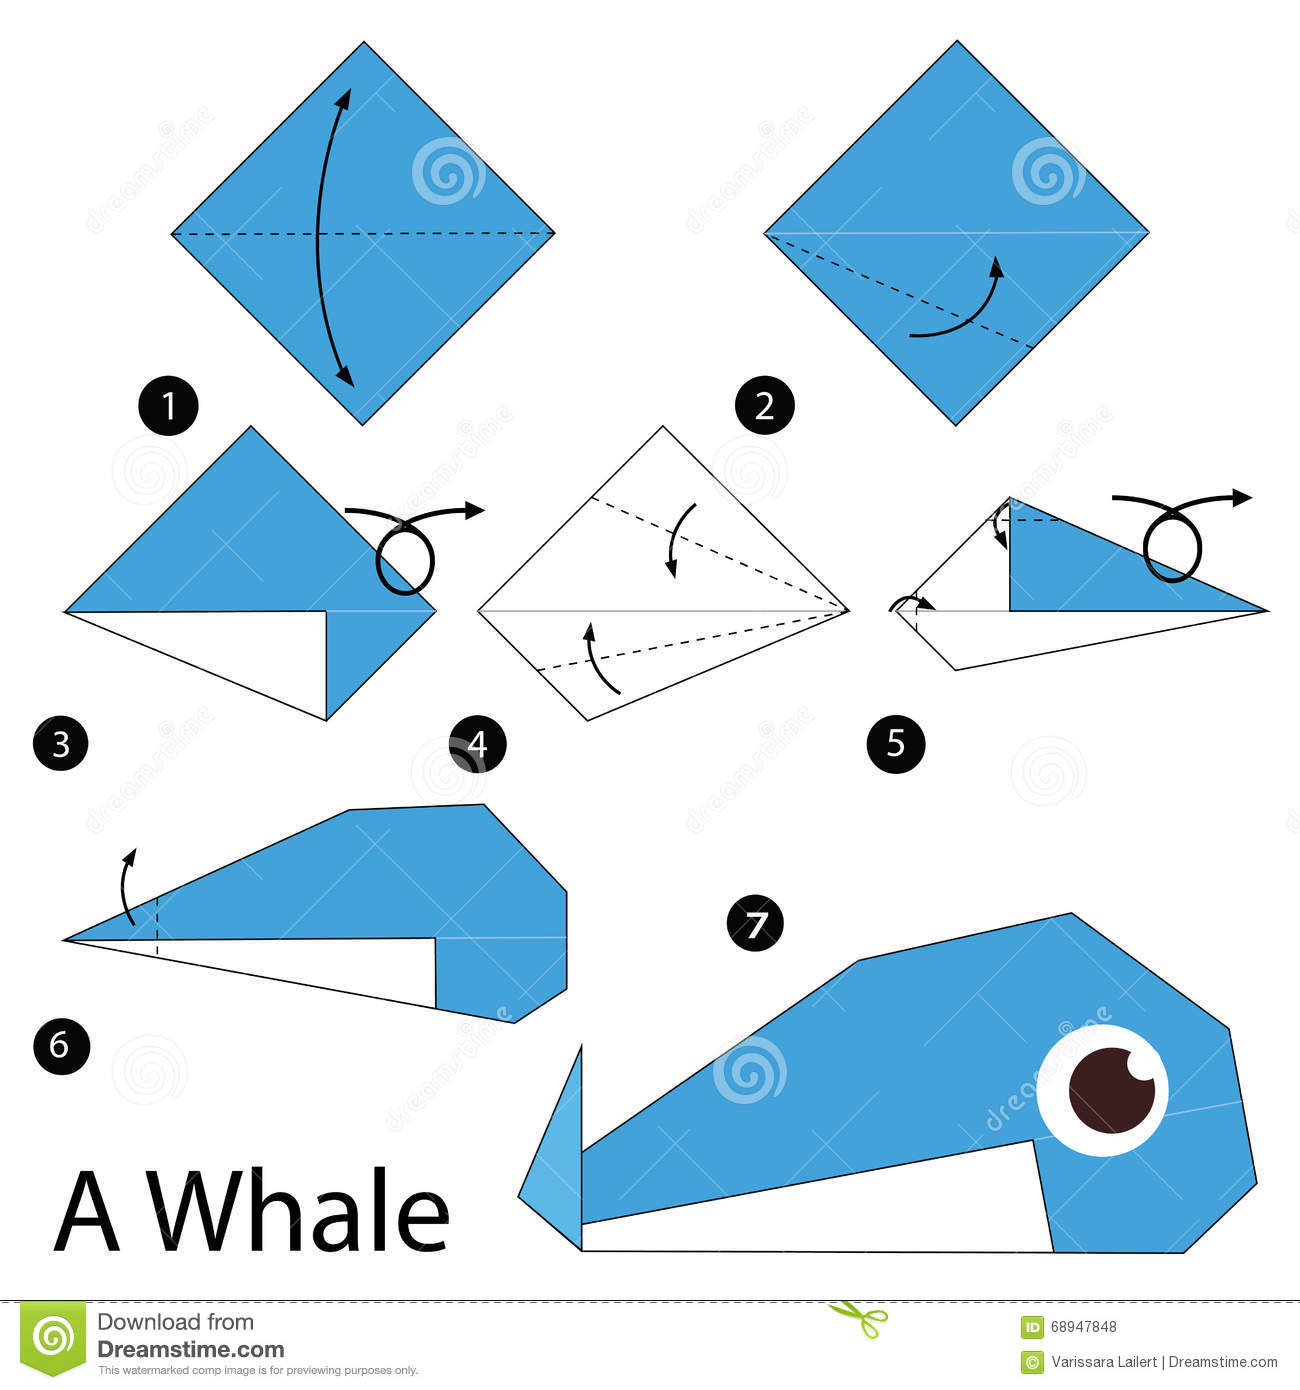 How to make a paper boat in easy steps psychologyarticlesfo how to make a paper boat in easy steps jeuxipadfo Image collections